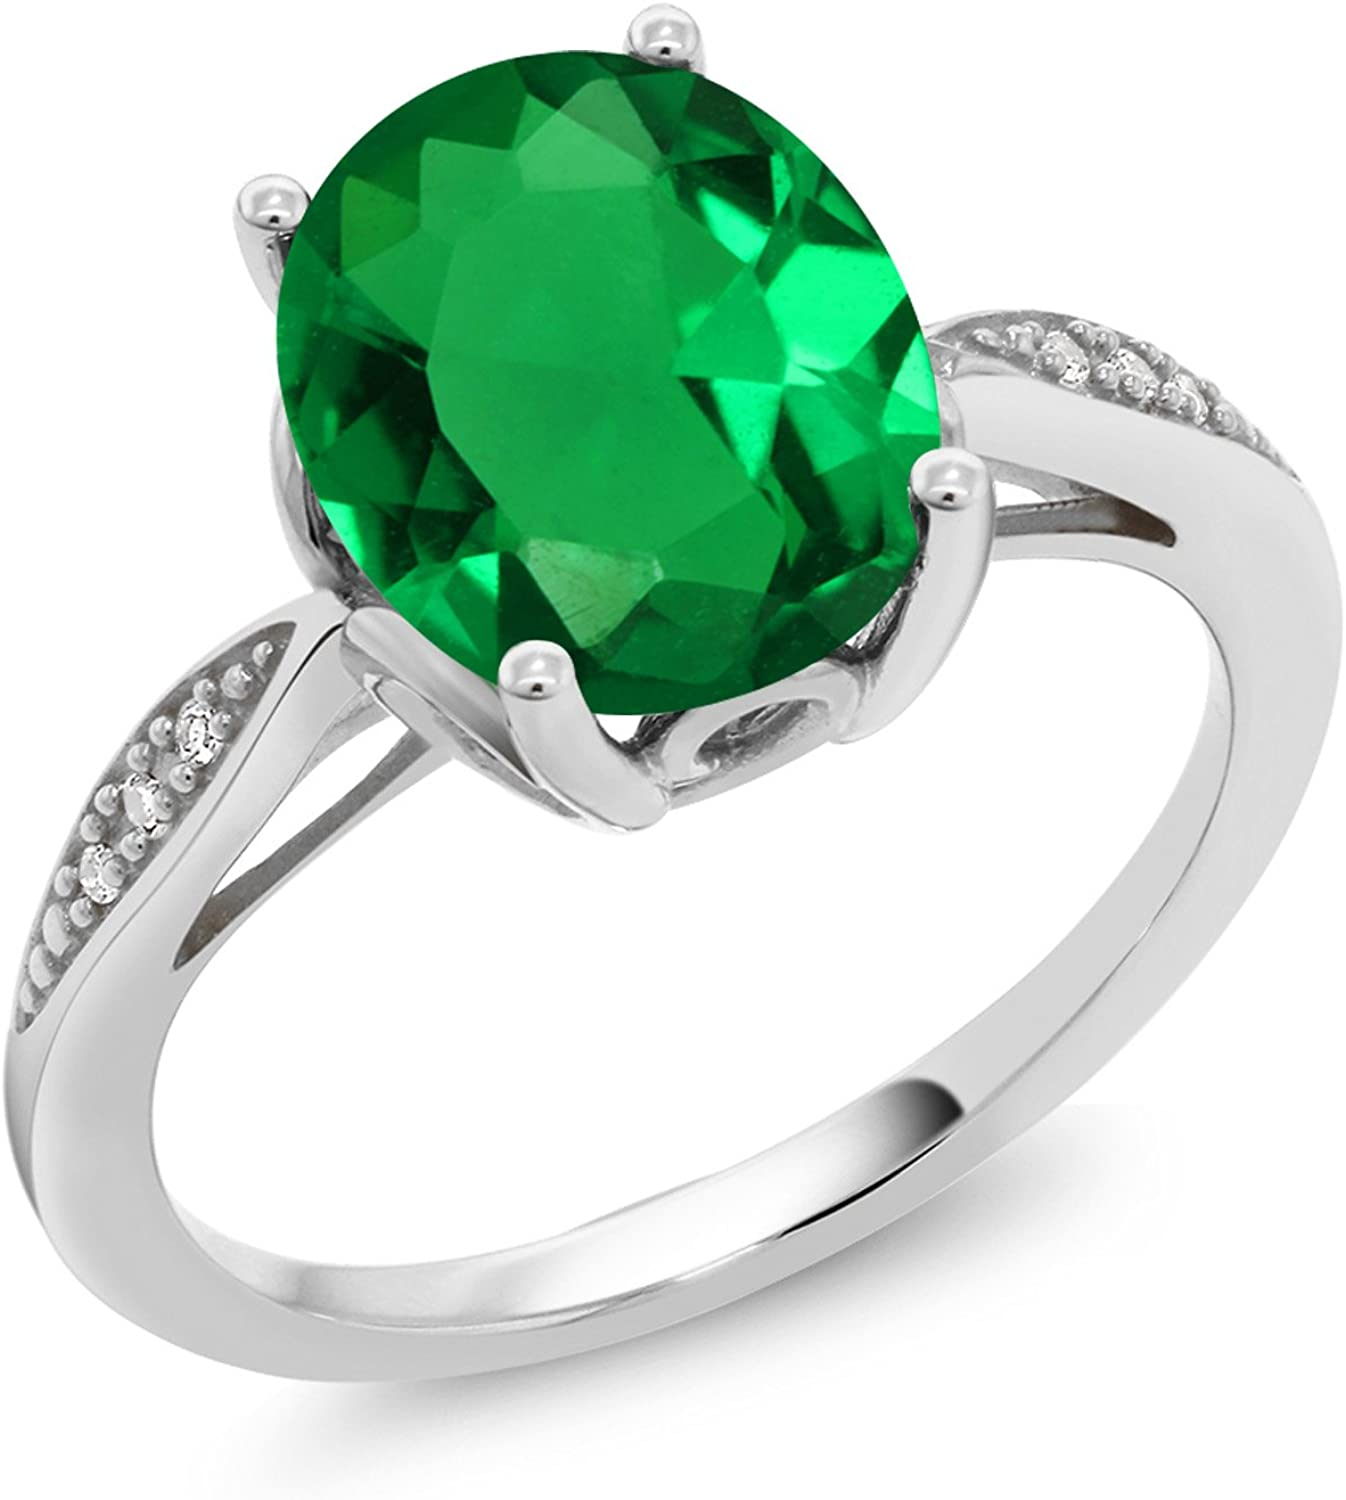 Gem Stone King 14K White Gold Green Simulated Emerald and White Diamond Women's Ring (2.24 Ct Oval, Available in size 5, 6, 7, 8, 9)